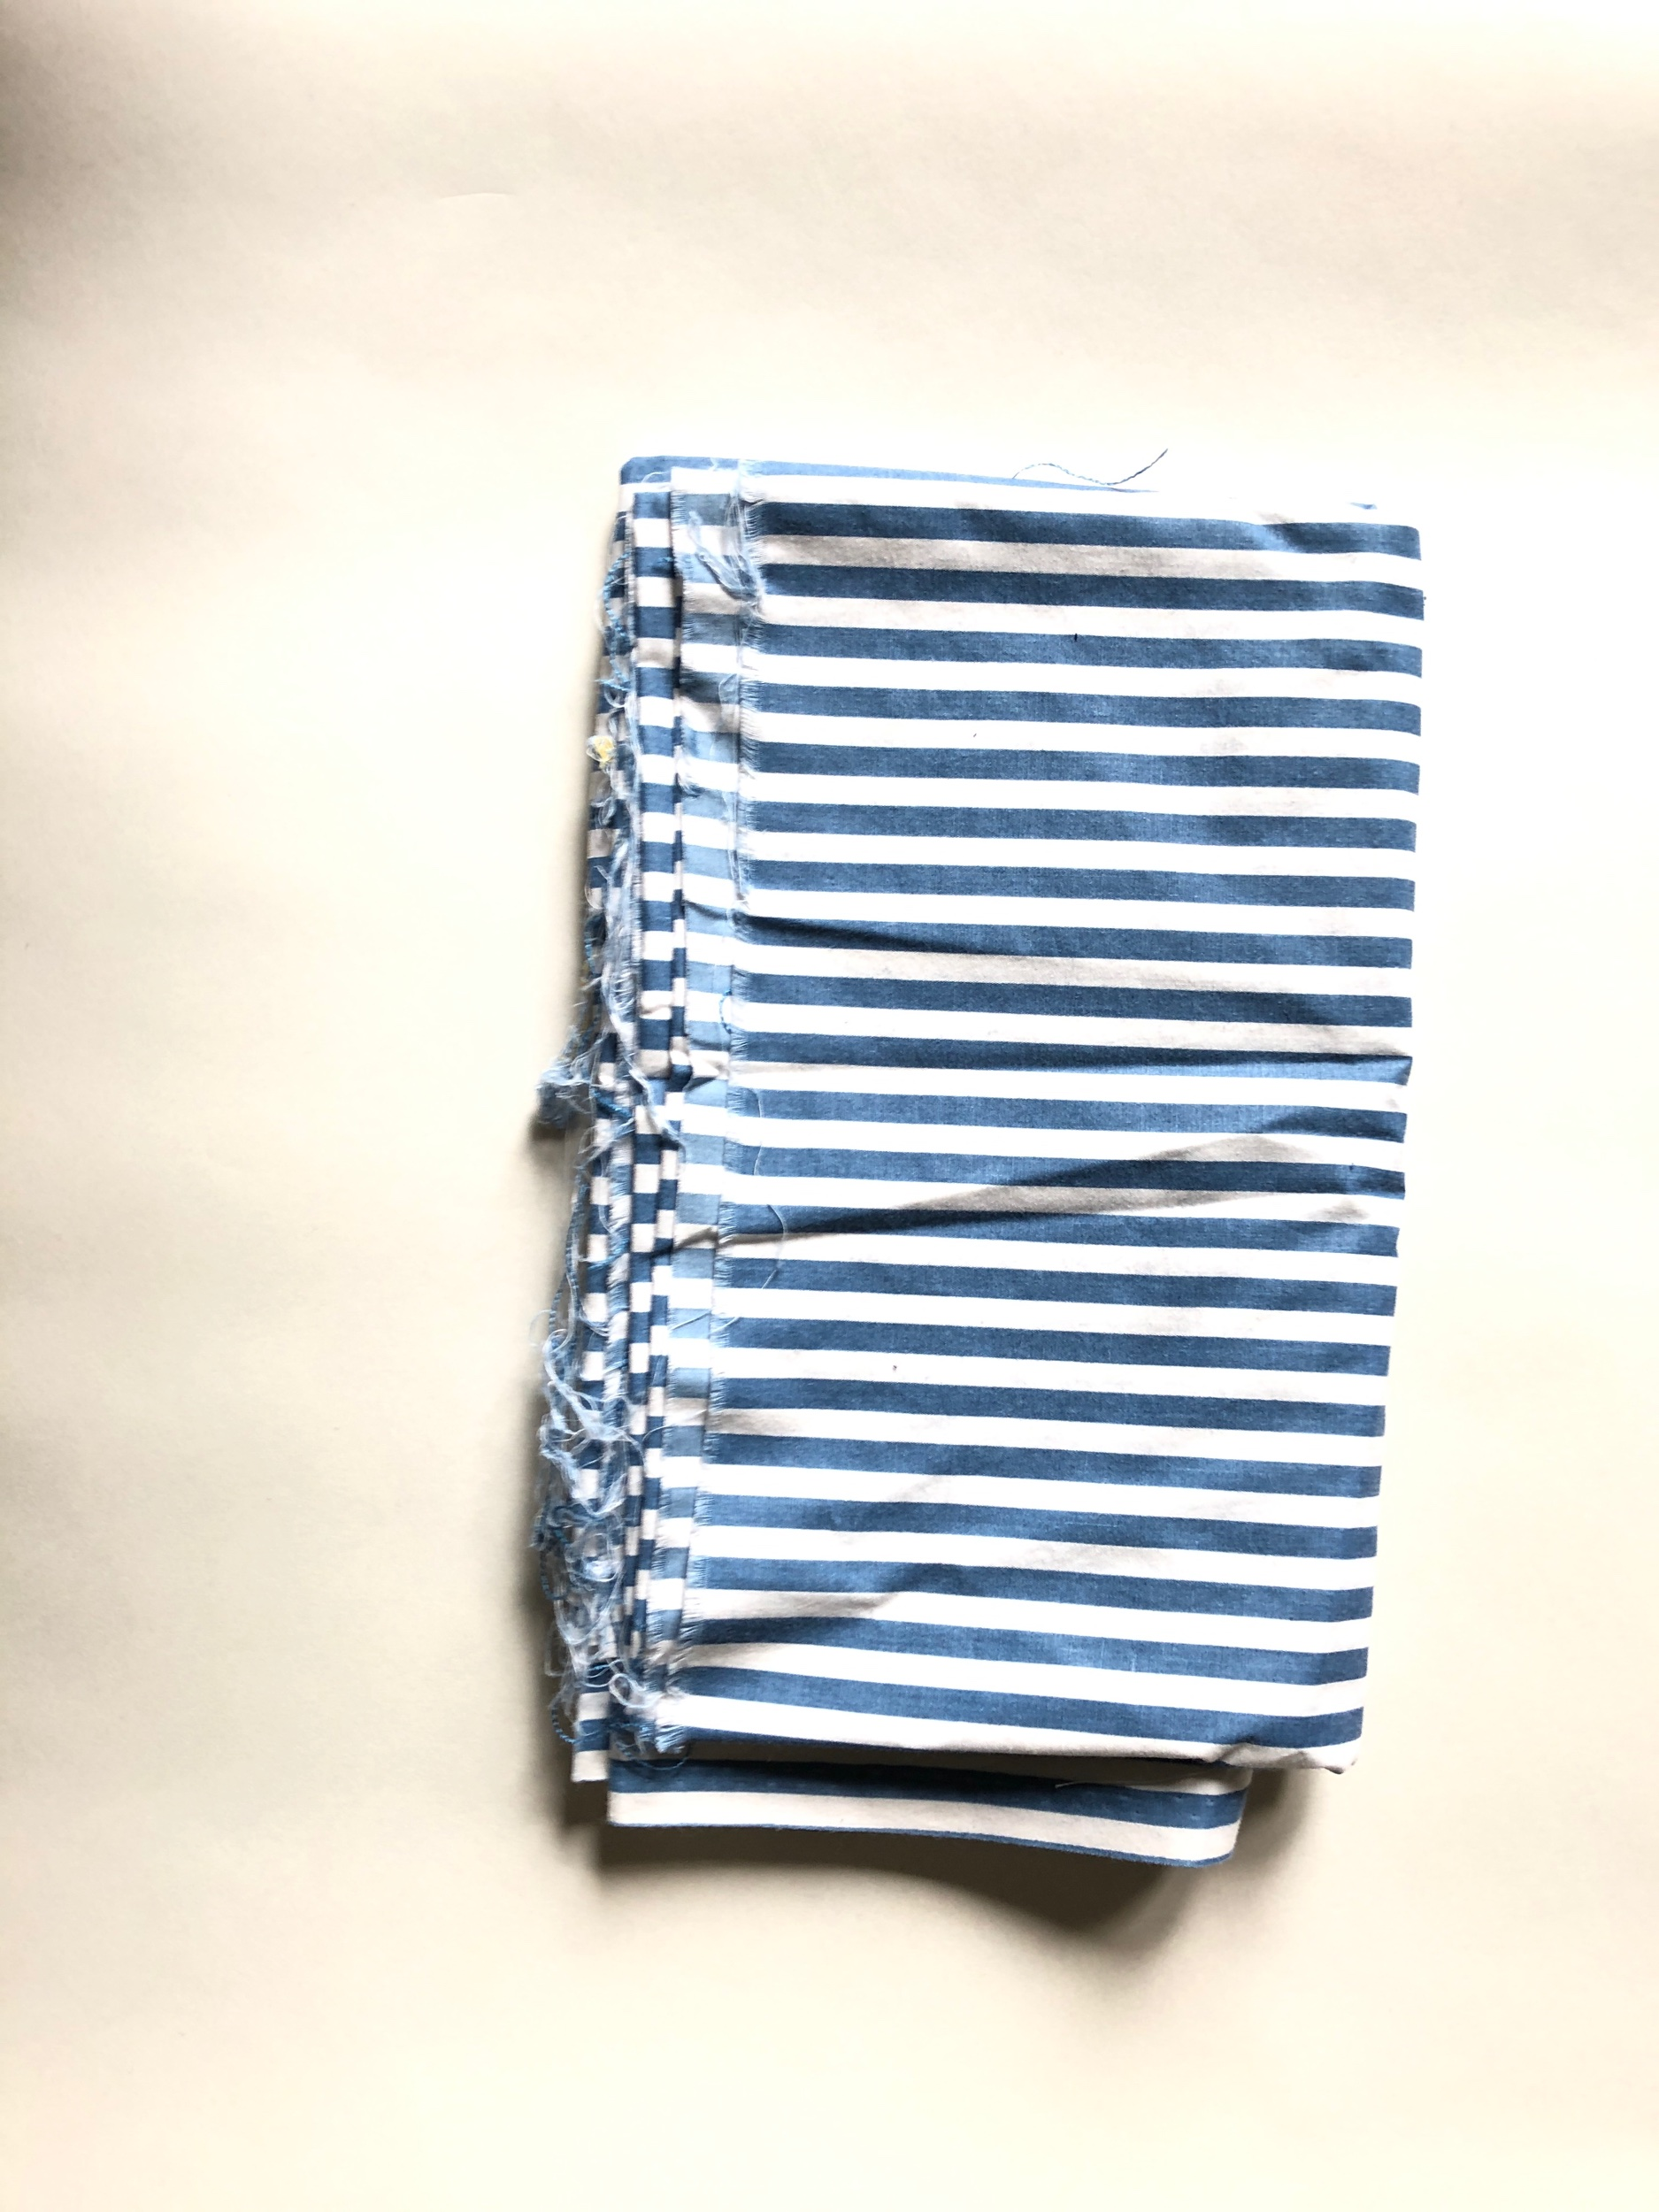 013 blue sailor stripe